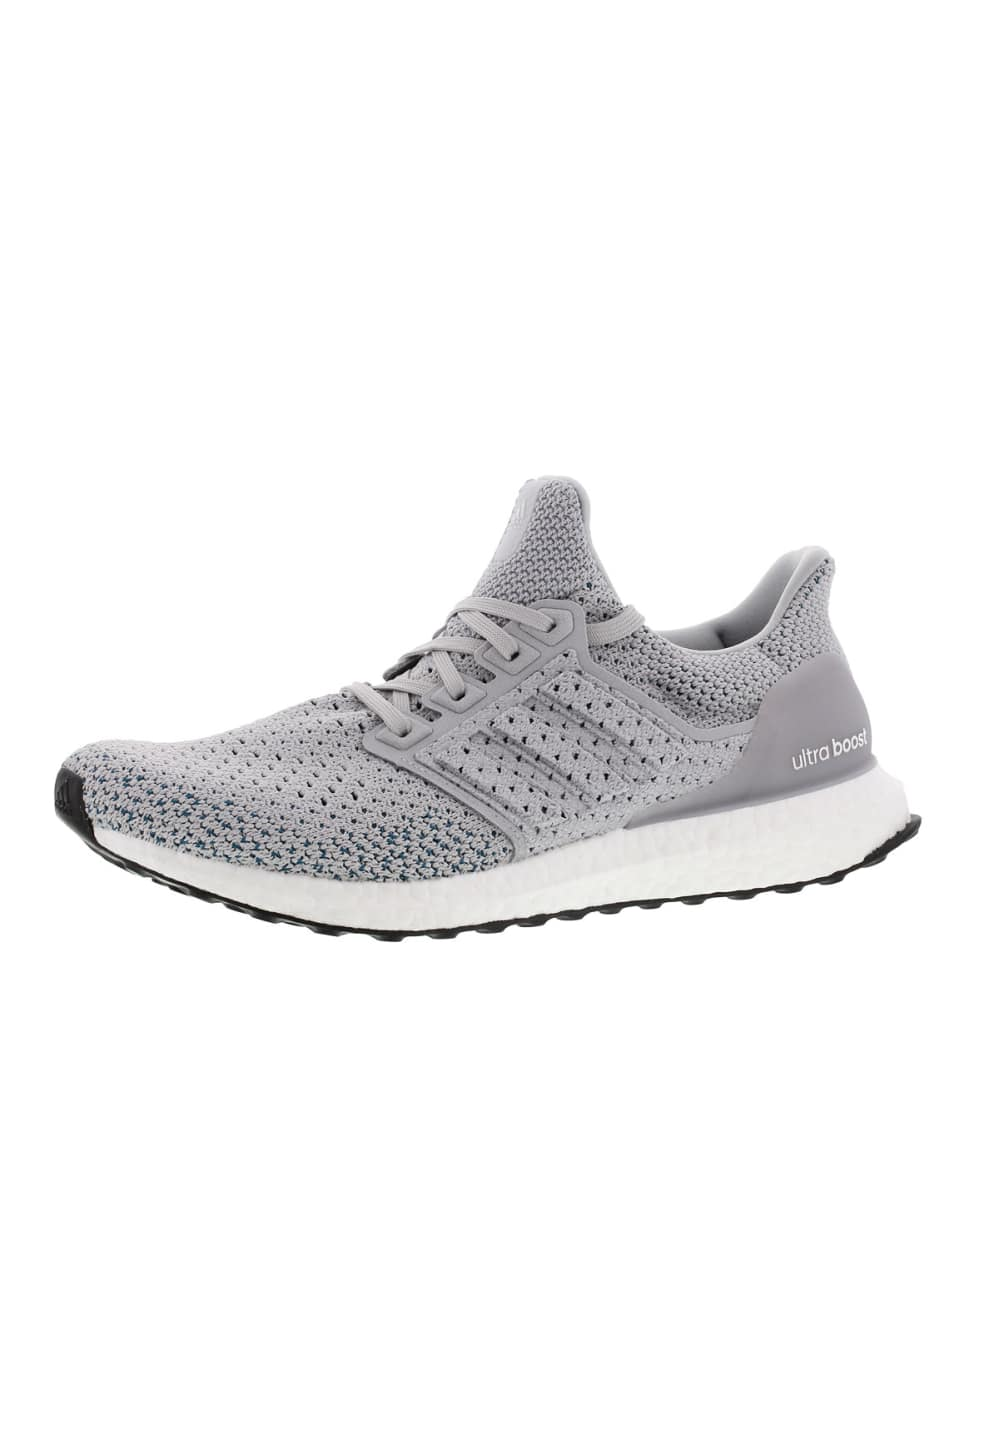 new styles 9840f 13f69 adidas Ultraboost Clima - Running shoes for Men - Grey